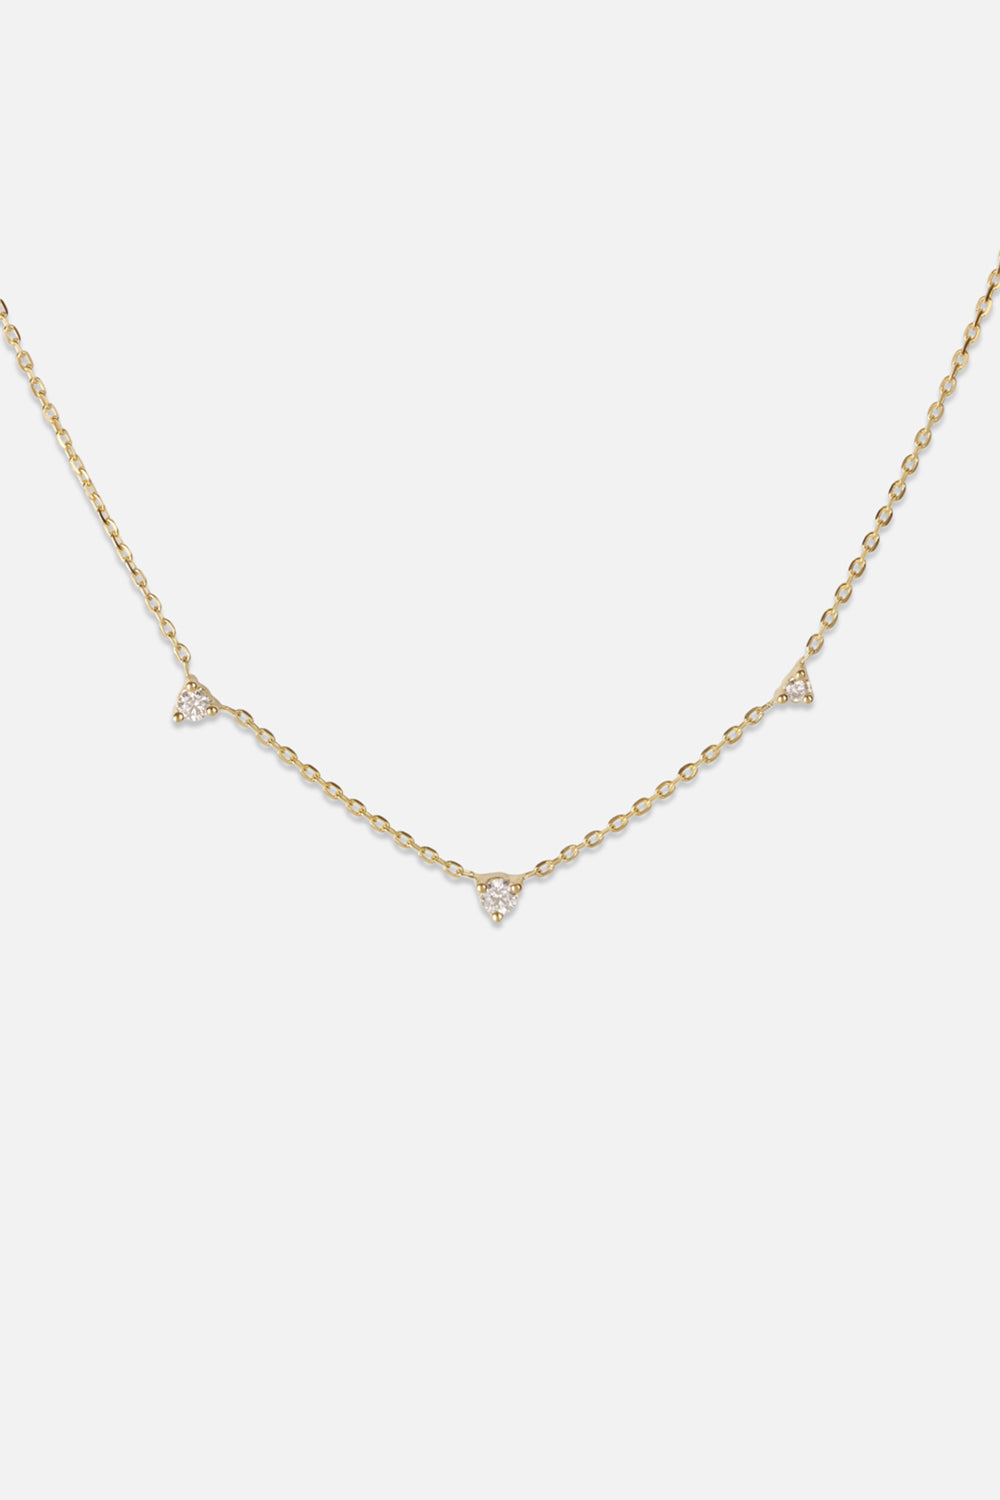 3 Round Diamond Necklace | Yellow Gold